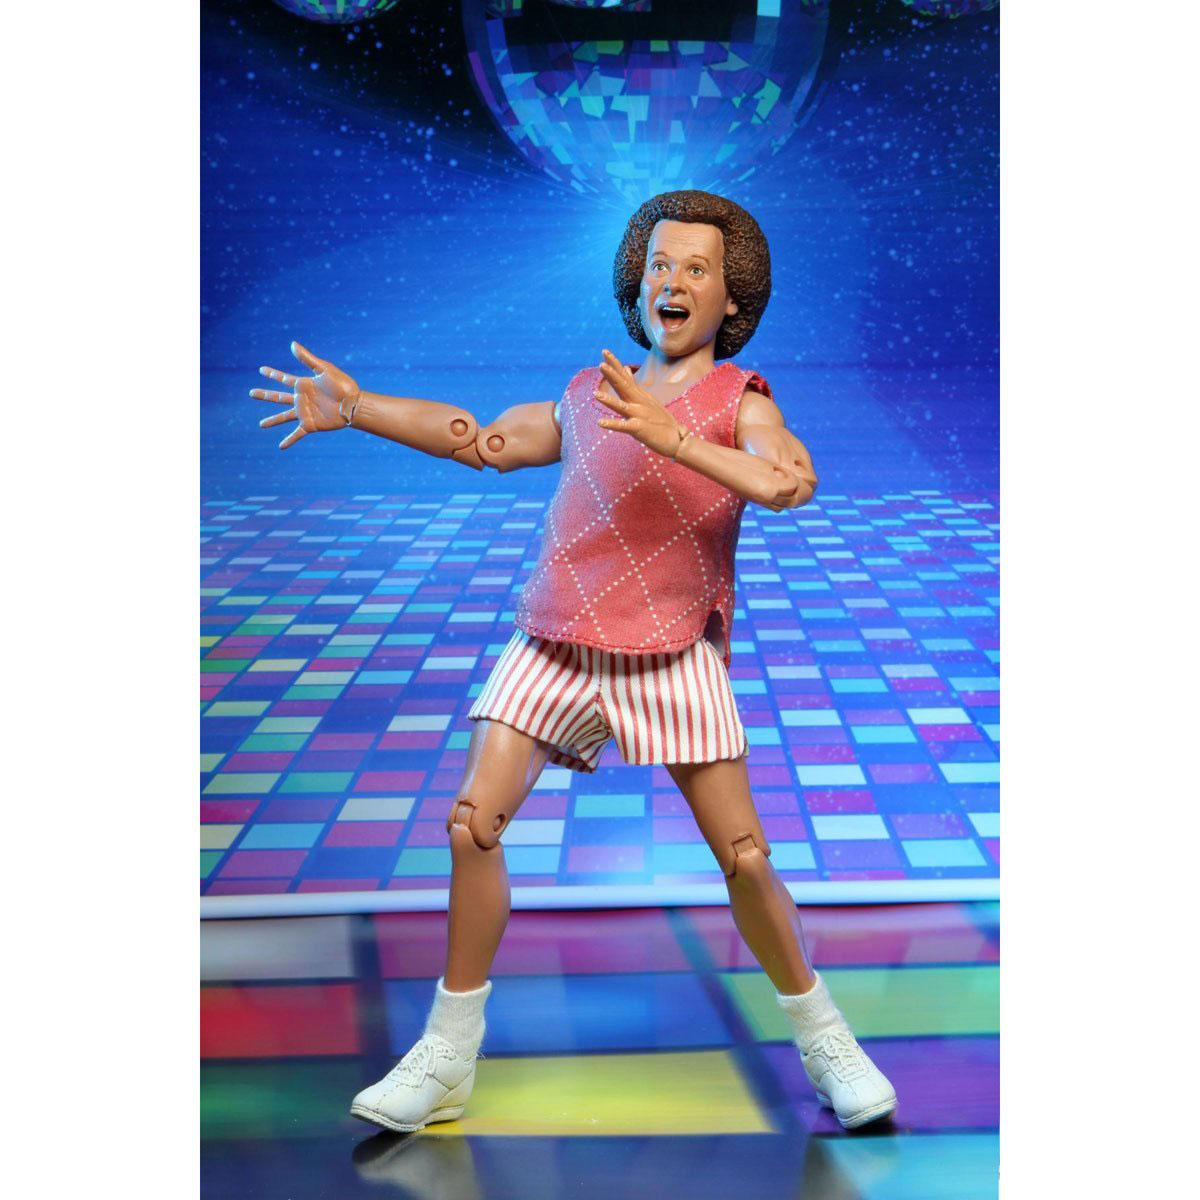 richard-simmons-neca-figure